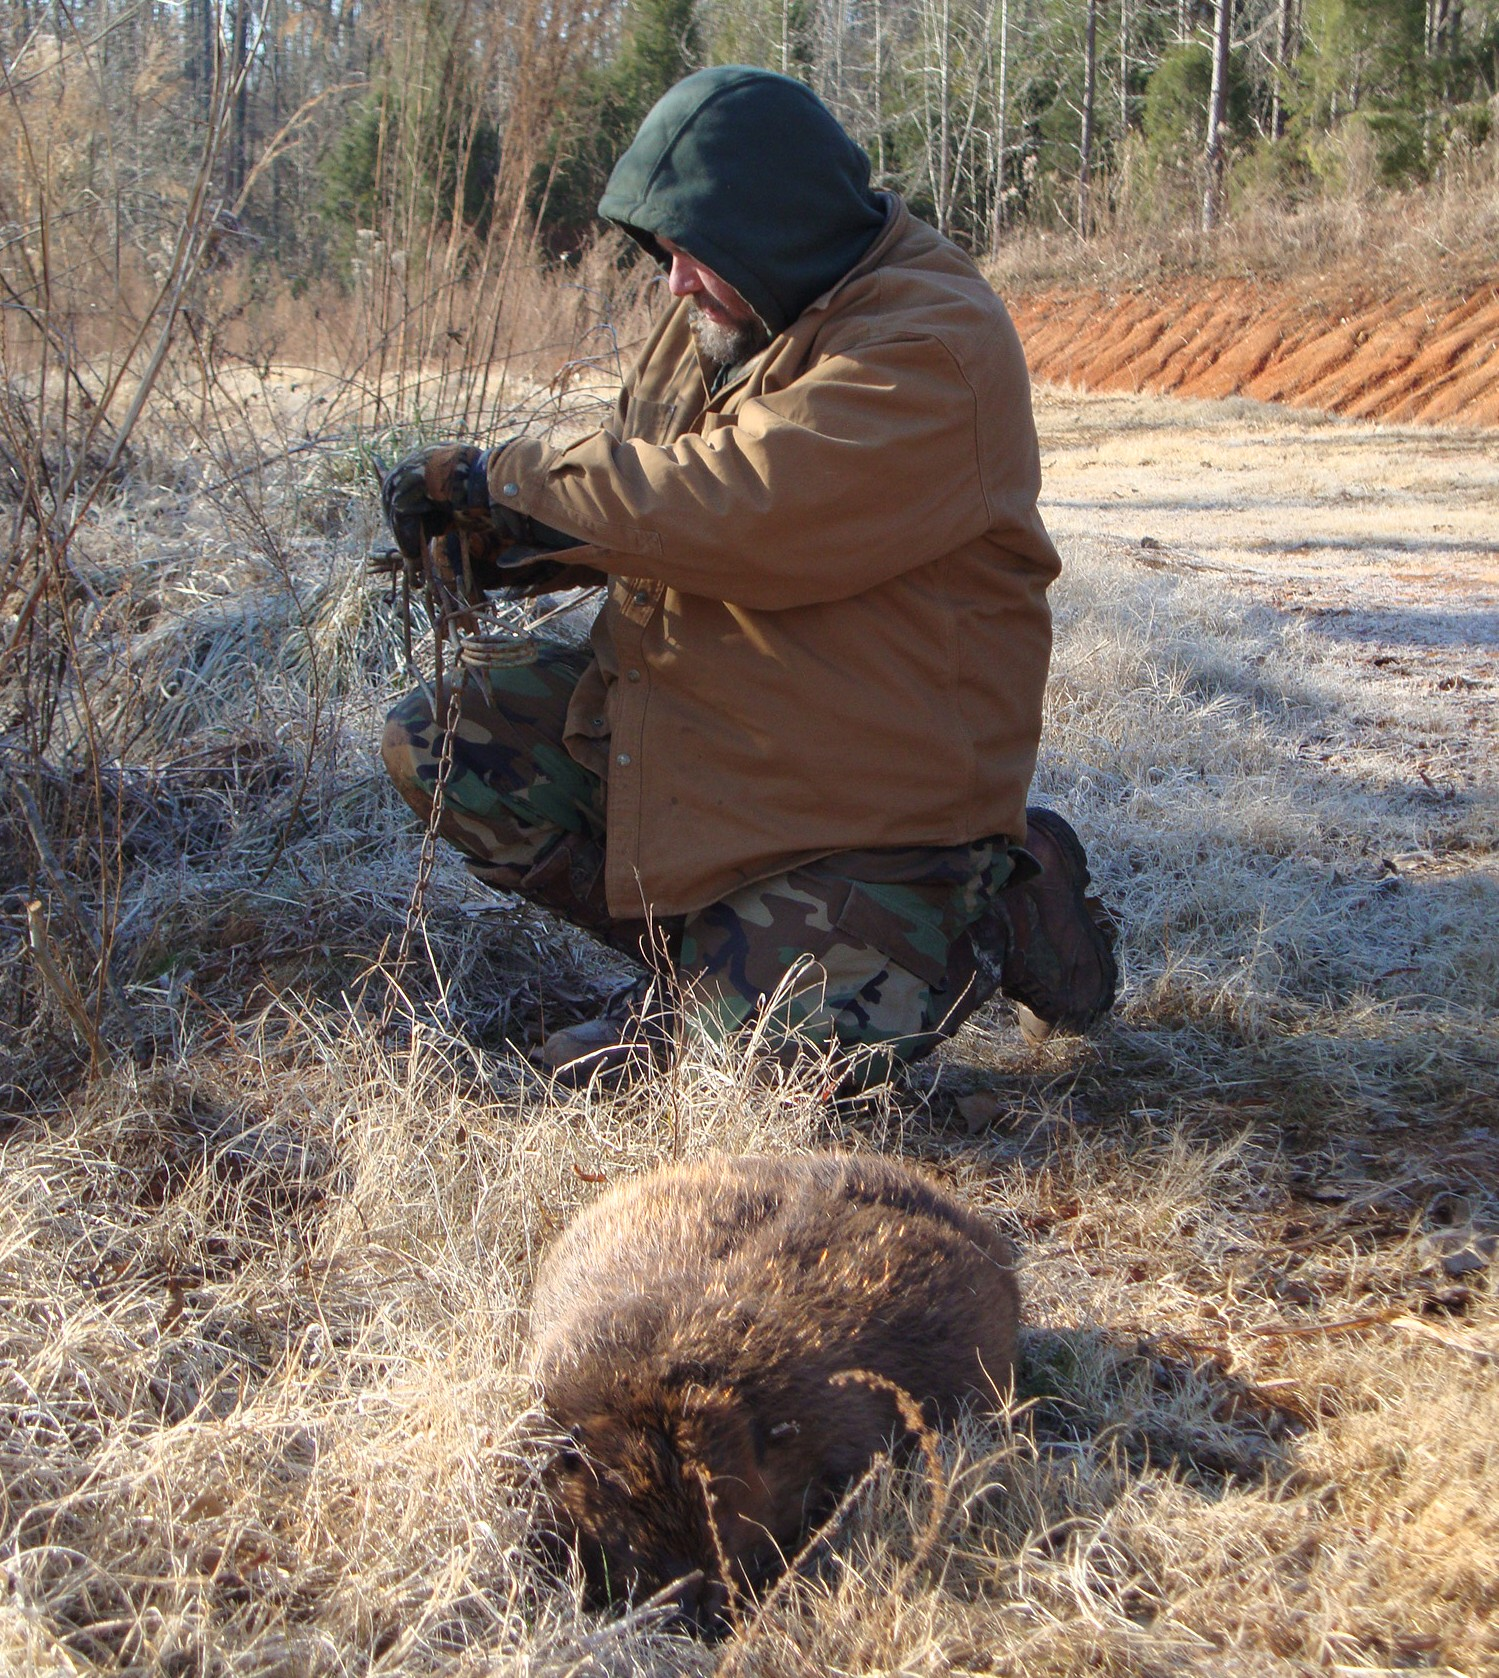 Trapping Radio 137 trapping understanding southerners, trapping breeding season coyote, selling lure and more